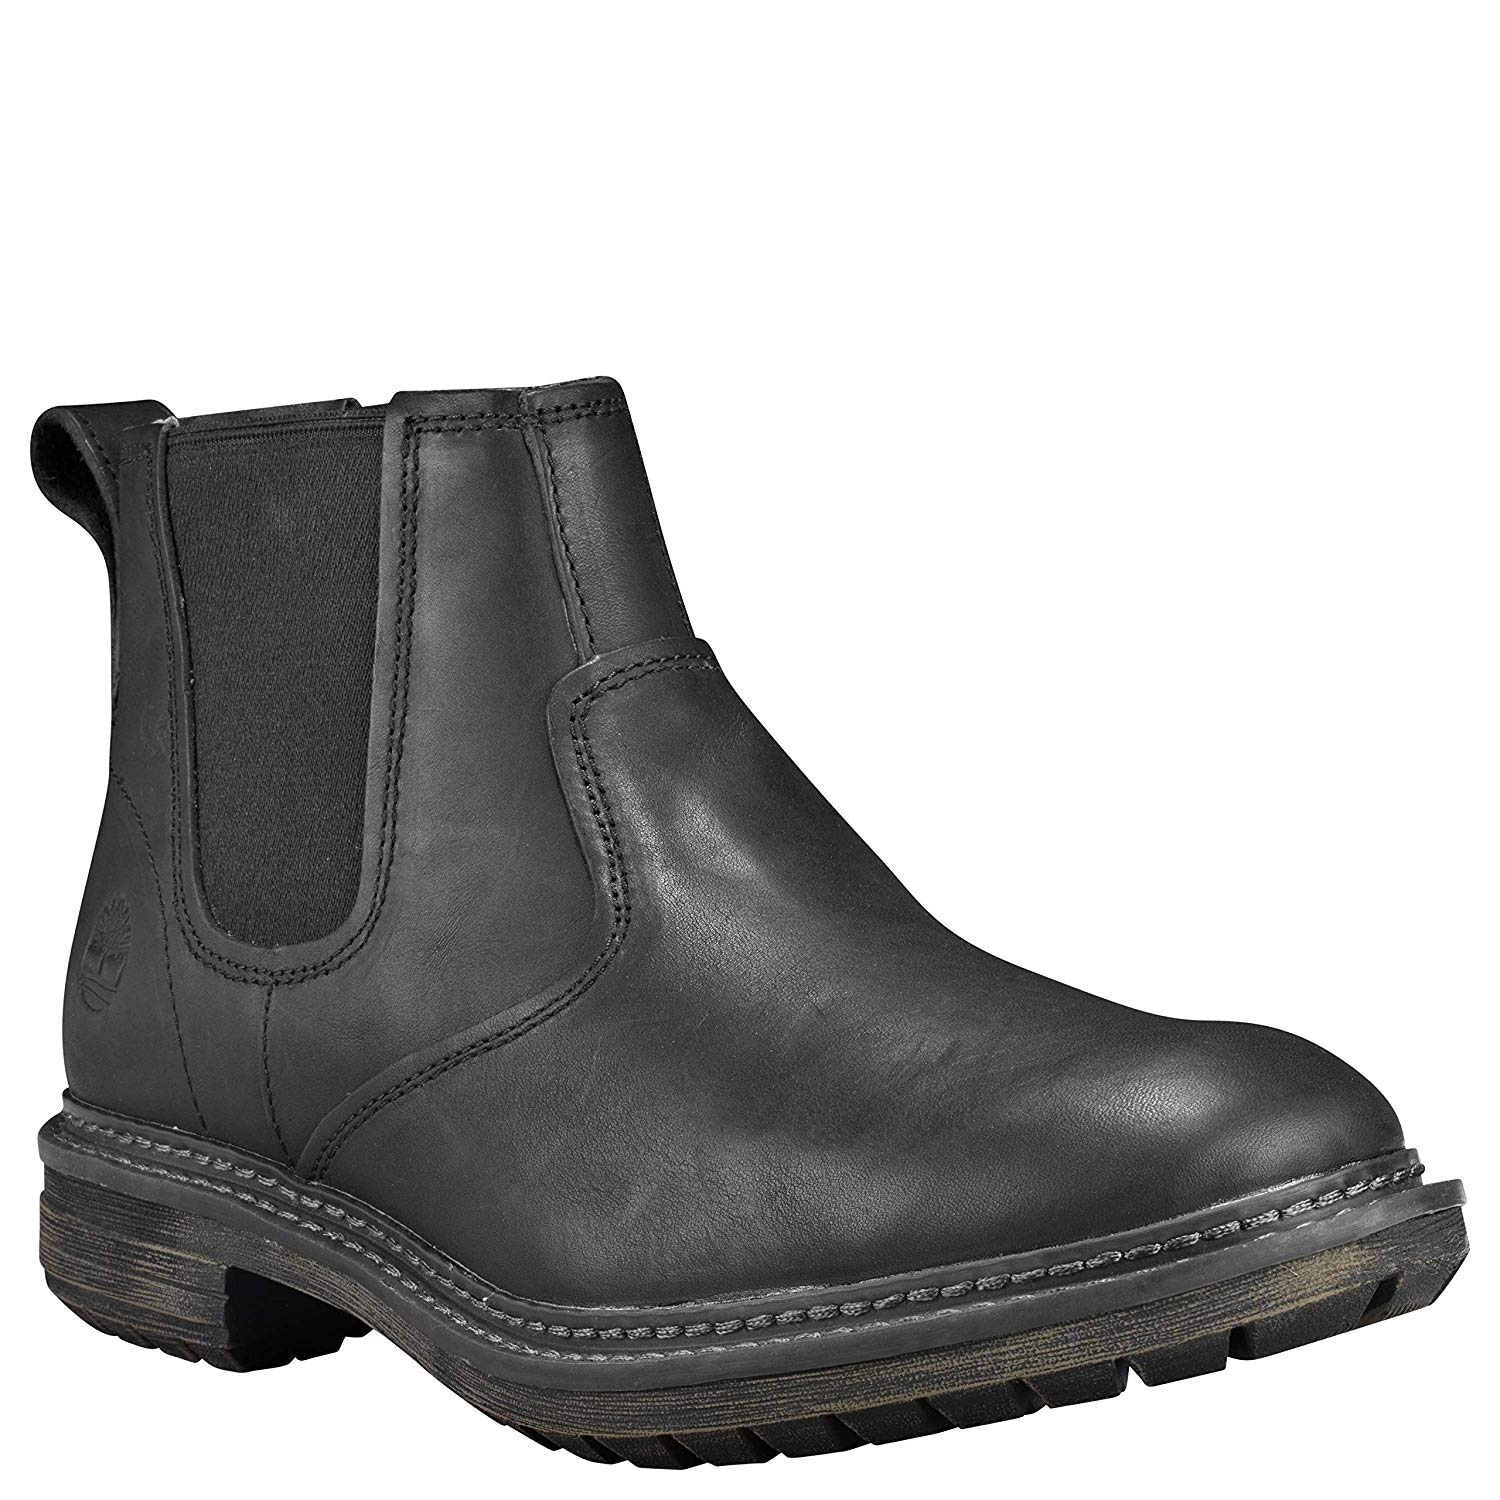 d57e62d0a Shop Timberland Mens TB0A1V4Z358 Leather Round Toe Ankle Motorcycle Boots -  Free Shipping Today - Overstock - 26628692